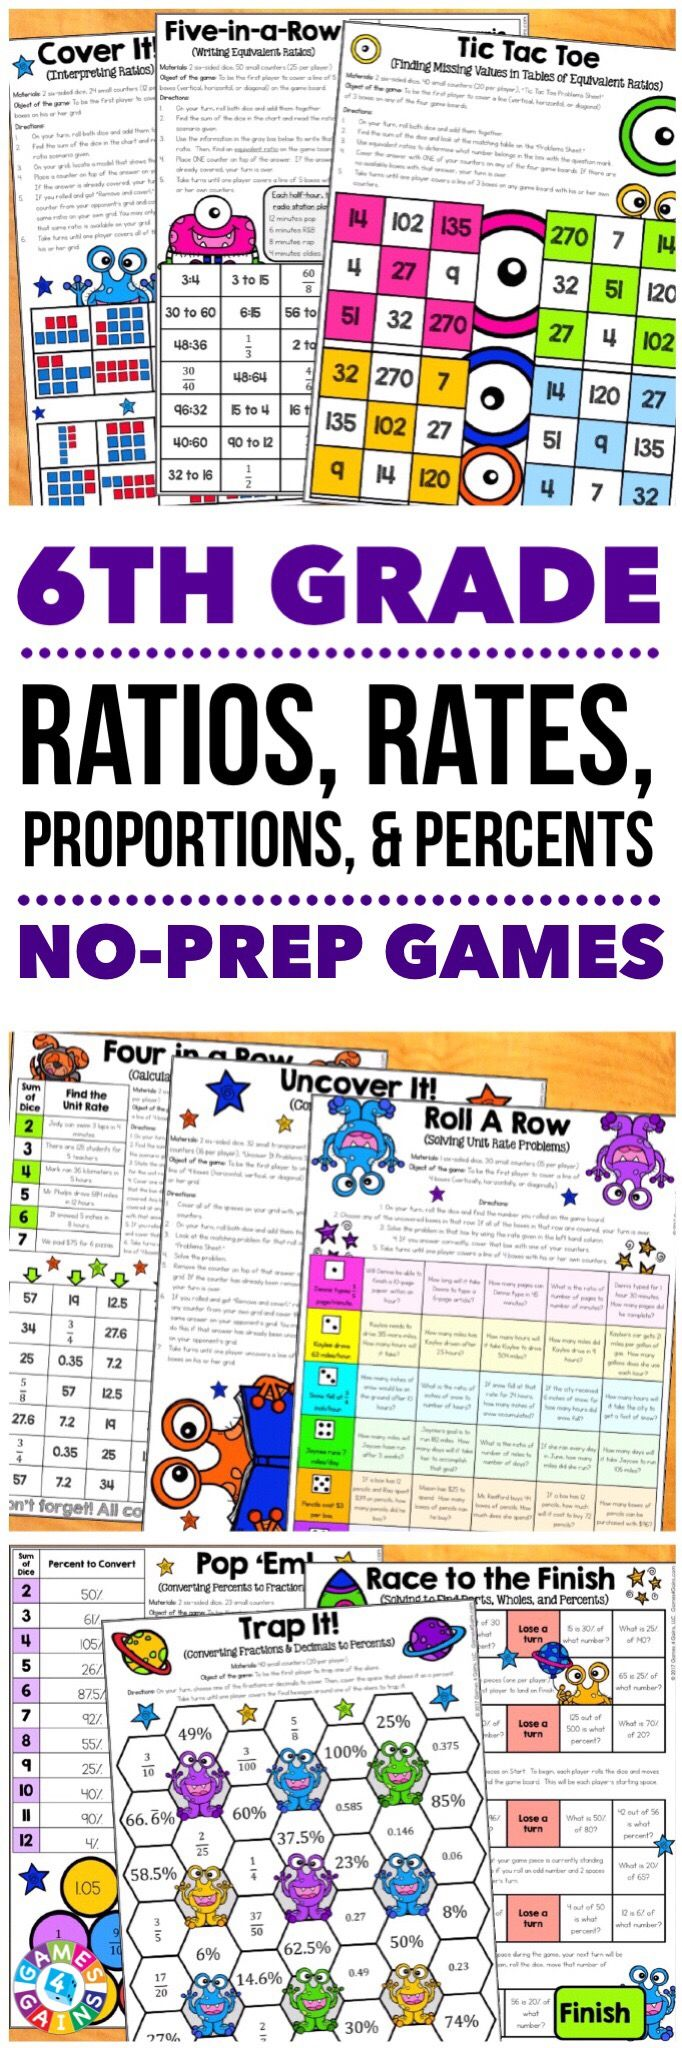 """Students are LOVING these games to reinforce standards."" This 6th Grade Ratios, Rates, Proportions, and Percents Games Pack includes 30 differentiated games for practicing using ratios, finding equivalent ratios, calculating rates, calculating percents and percents of a quantity, converting measurements, and much more!  These games support the 6th grade CCSS ratios and proportional relationships standards {6.RP.1, 2.RP.2, 2.RP.3}."